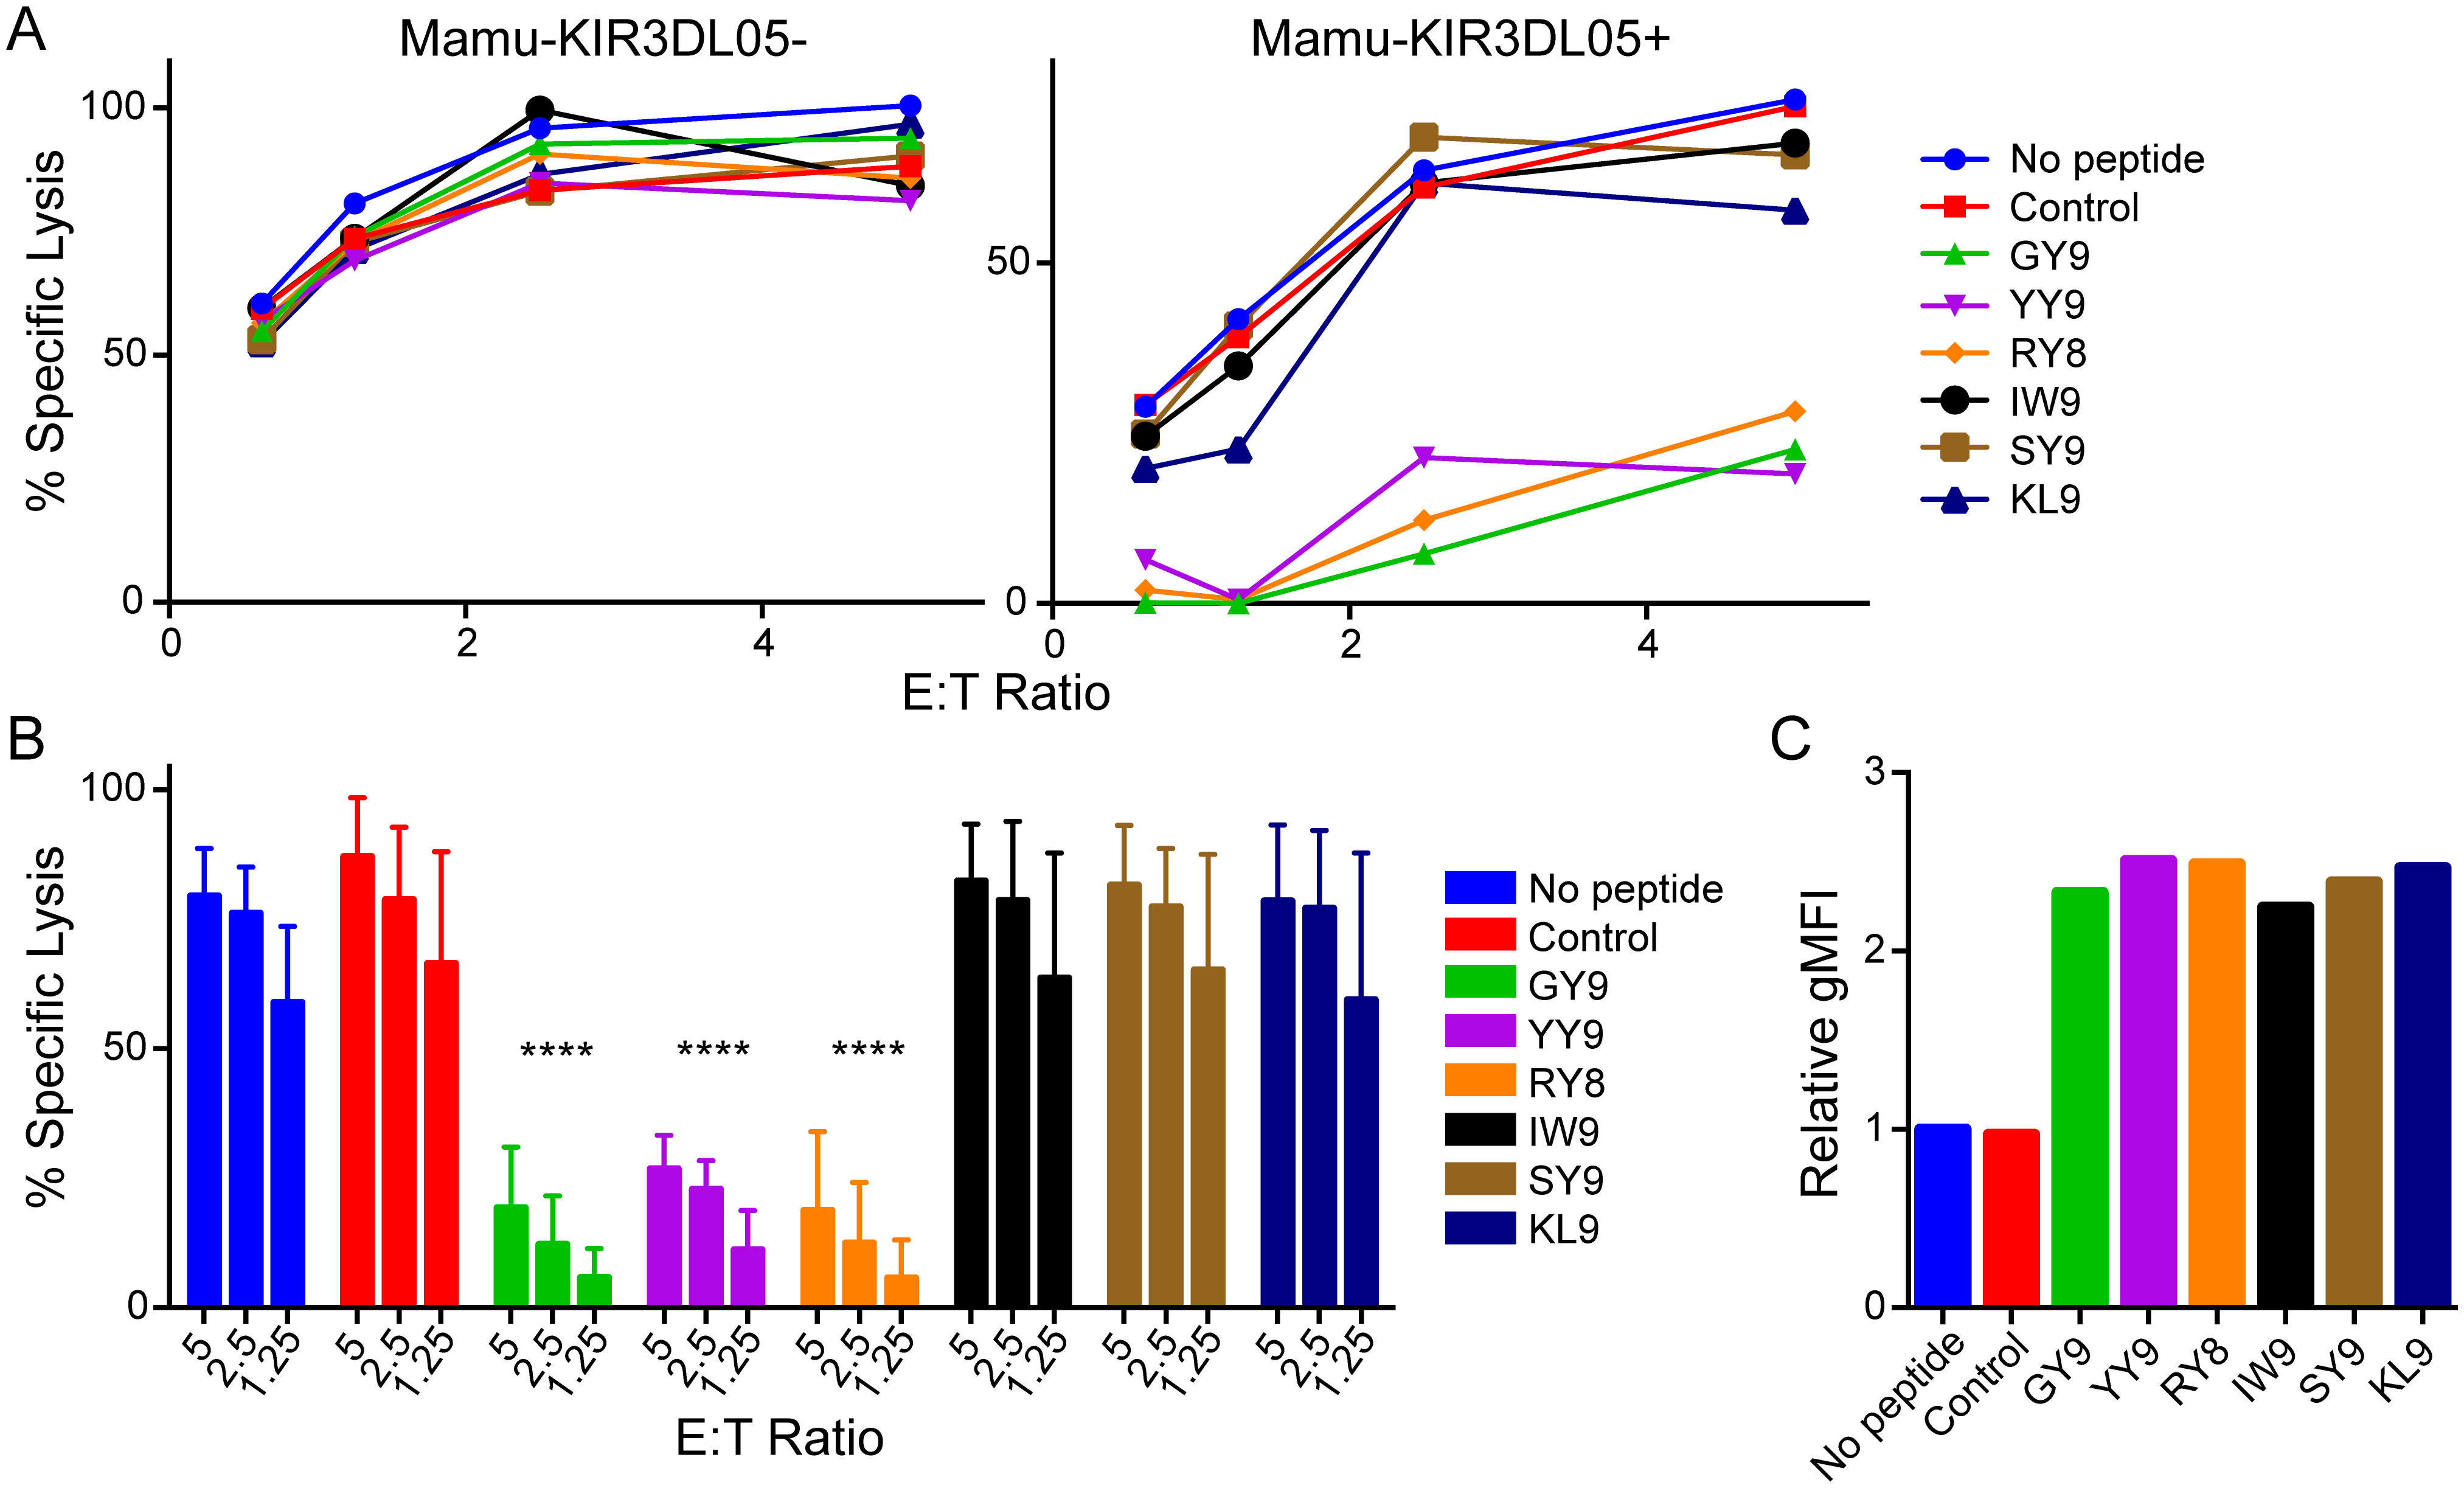 Peptide-dependent inhibition of Mamu-KIR3DL05<sup>+</sup> NK cells.